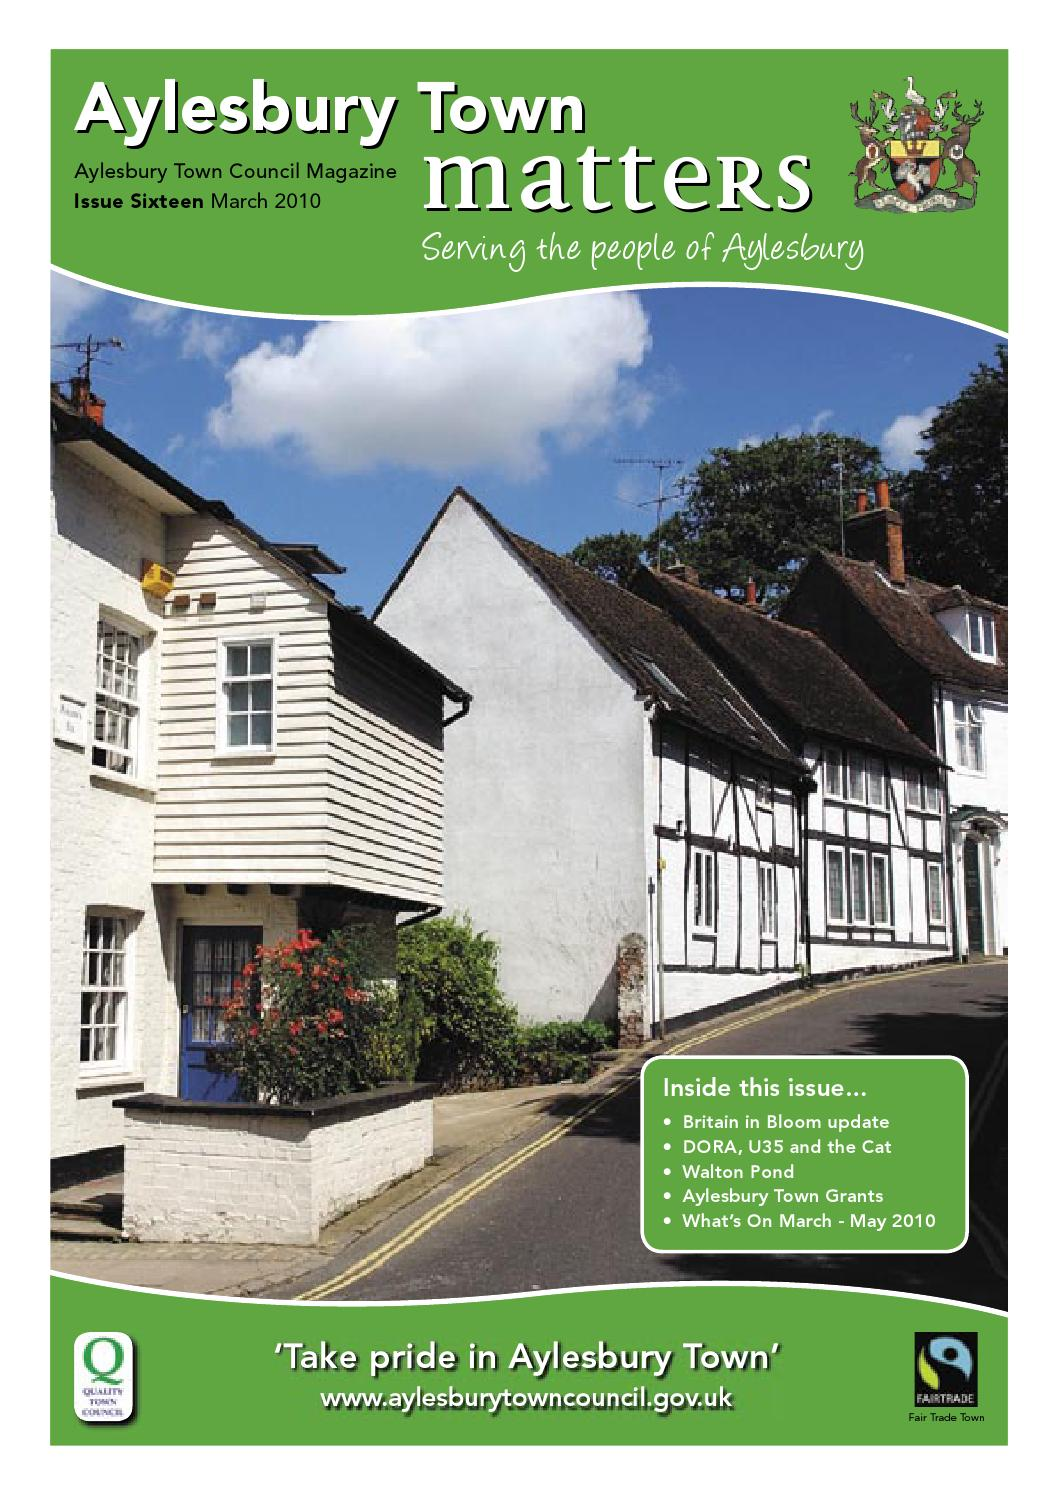 Aylesbury Town Matters Issue 16 By